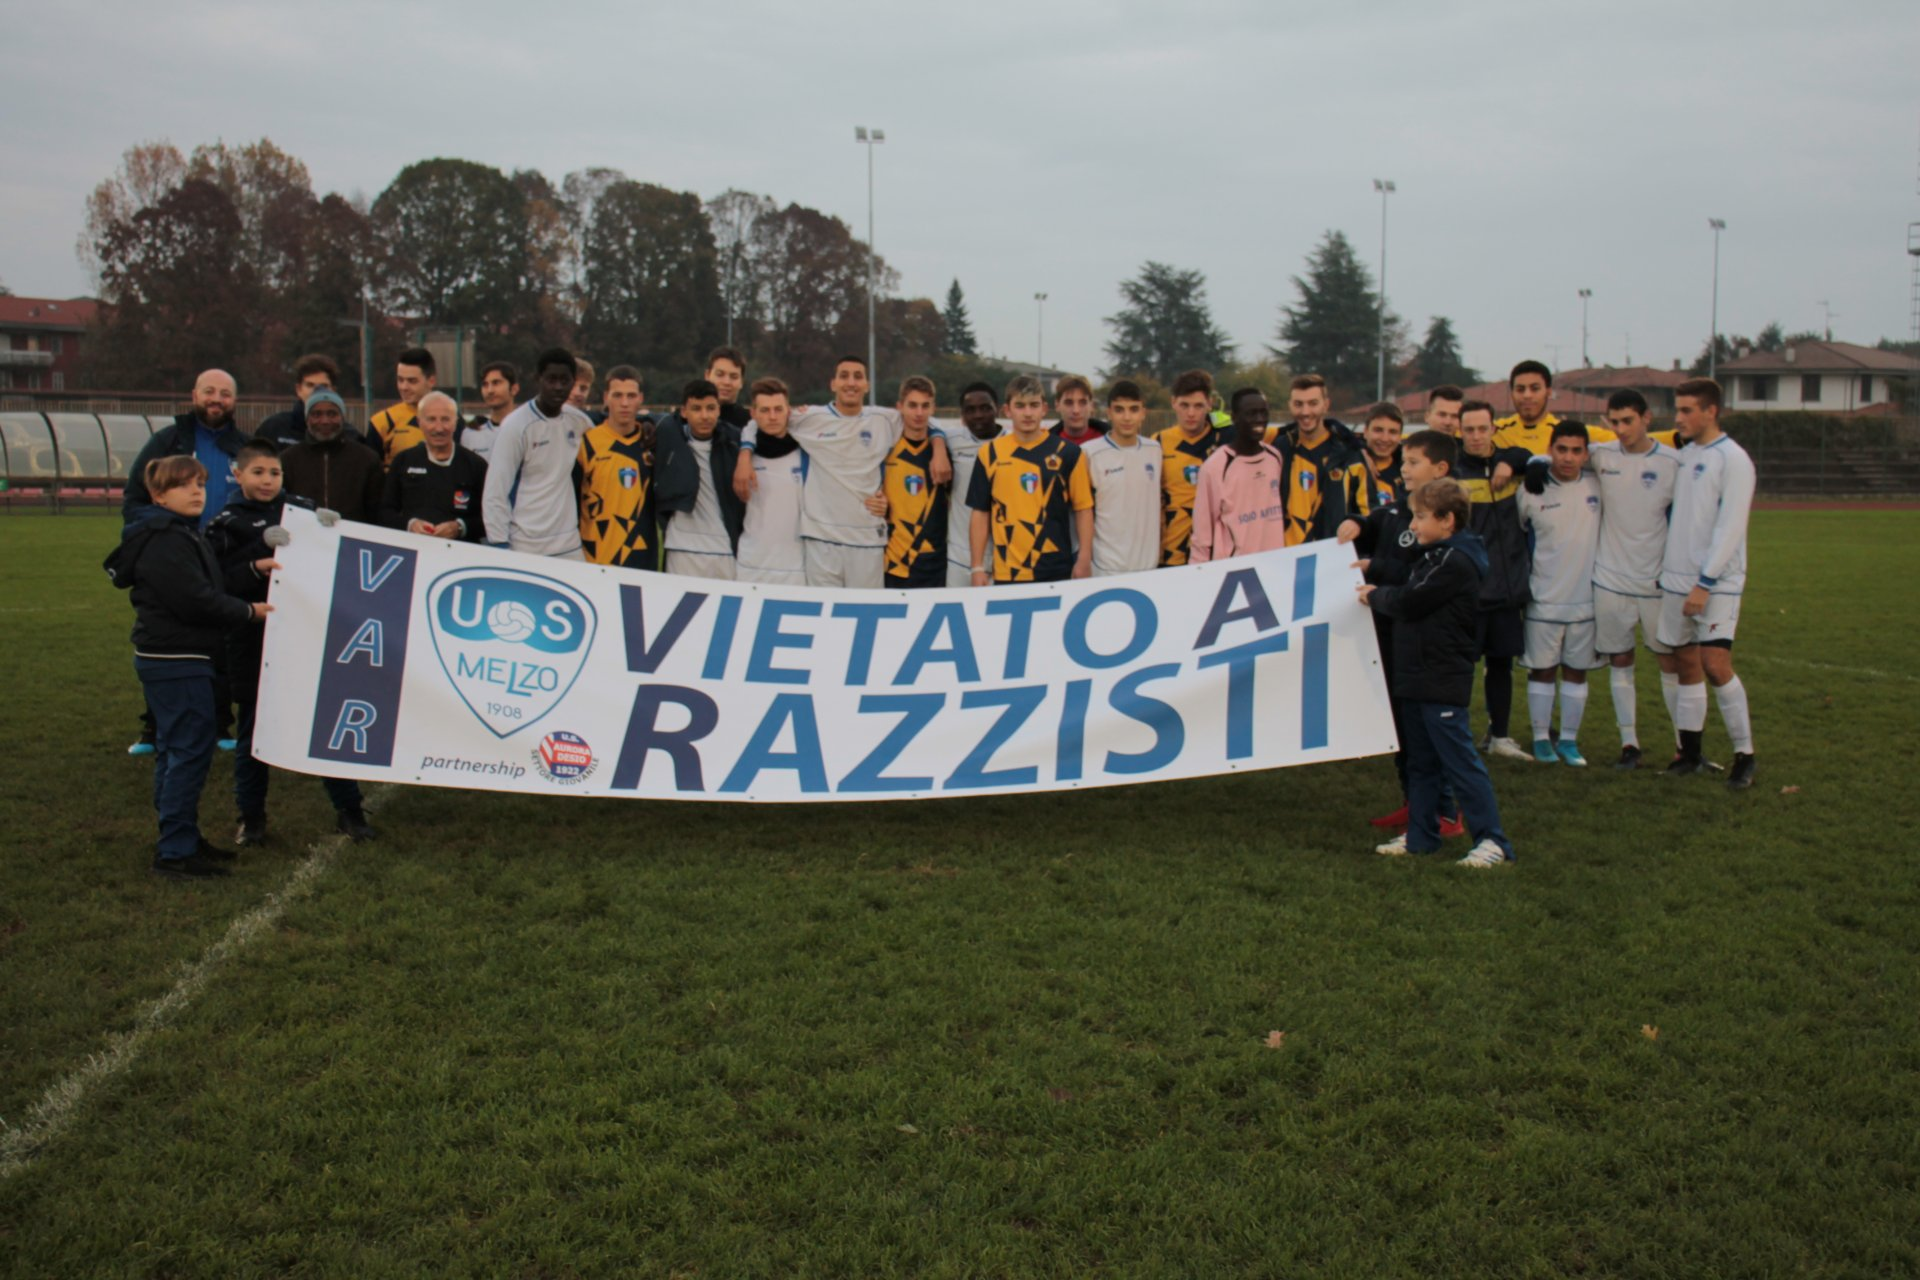 Partita antirazzista a Melzo FOTO E VIDEO - La Martesana